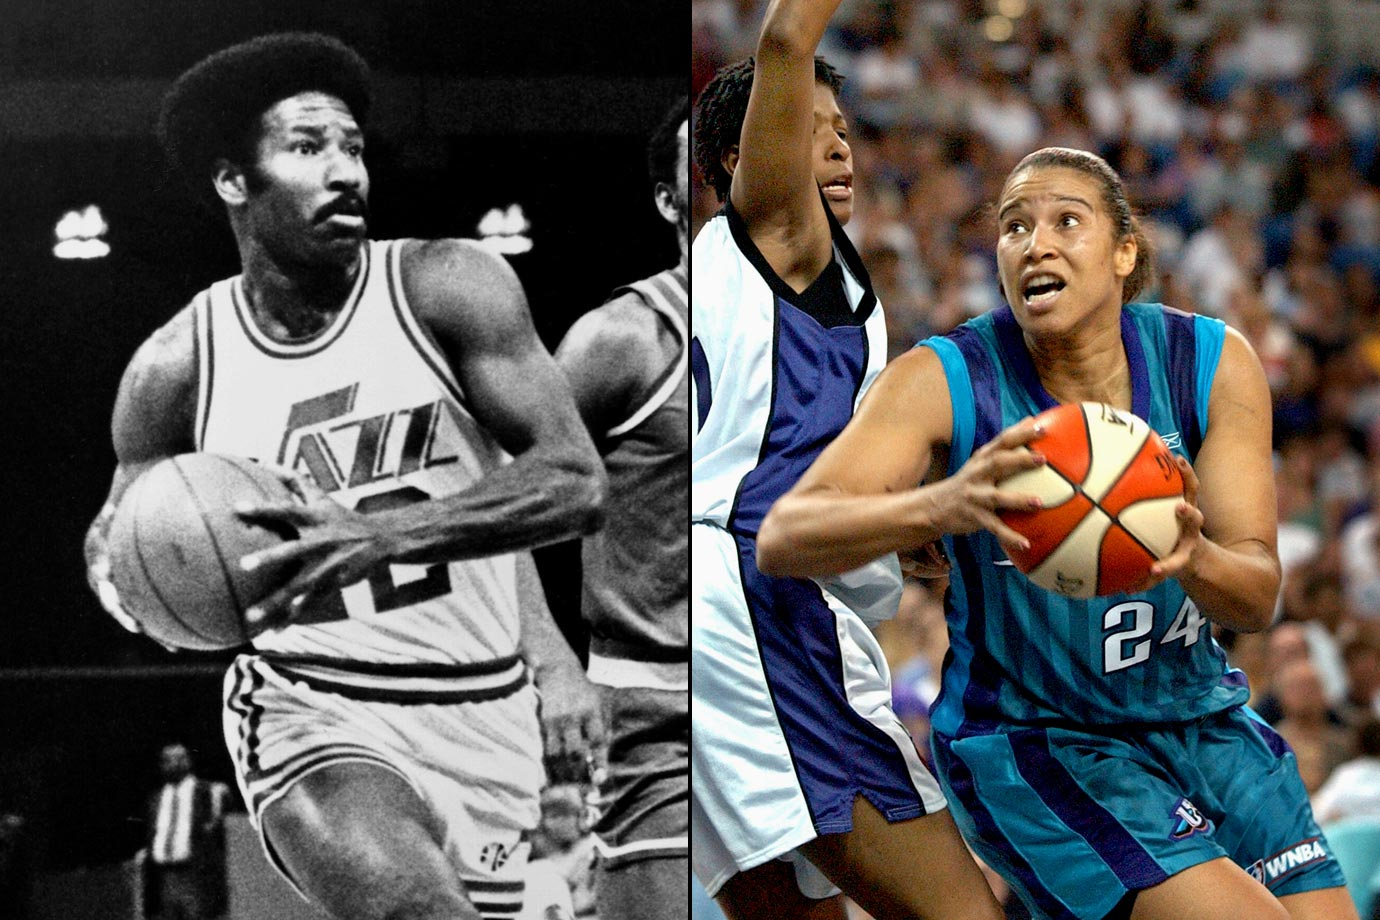 Natalie, who didn't meet her father until she was 16, was the first woman to earn All-America honors in both basketball and volleyball in the same year while at UCLA. Nate played eight seasons in the NBA, while Natalie played seven in the WNBA.